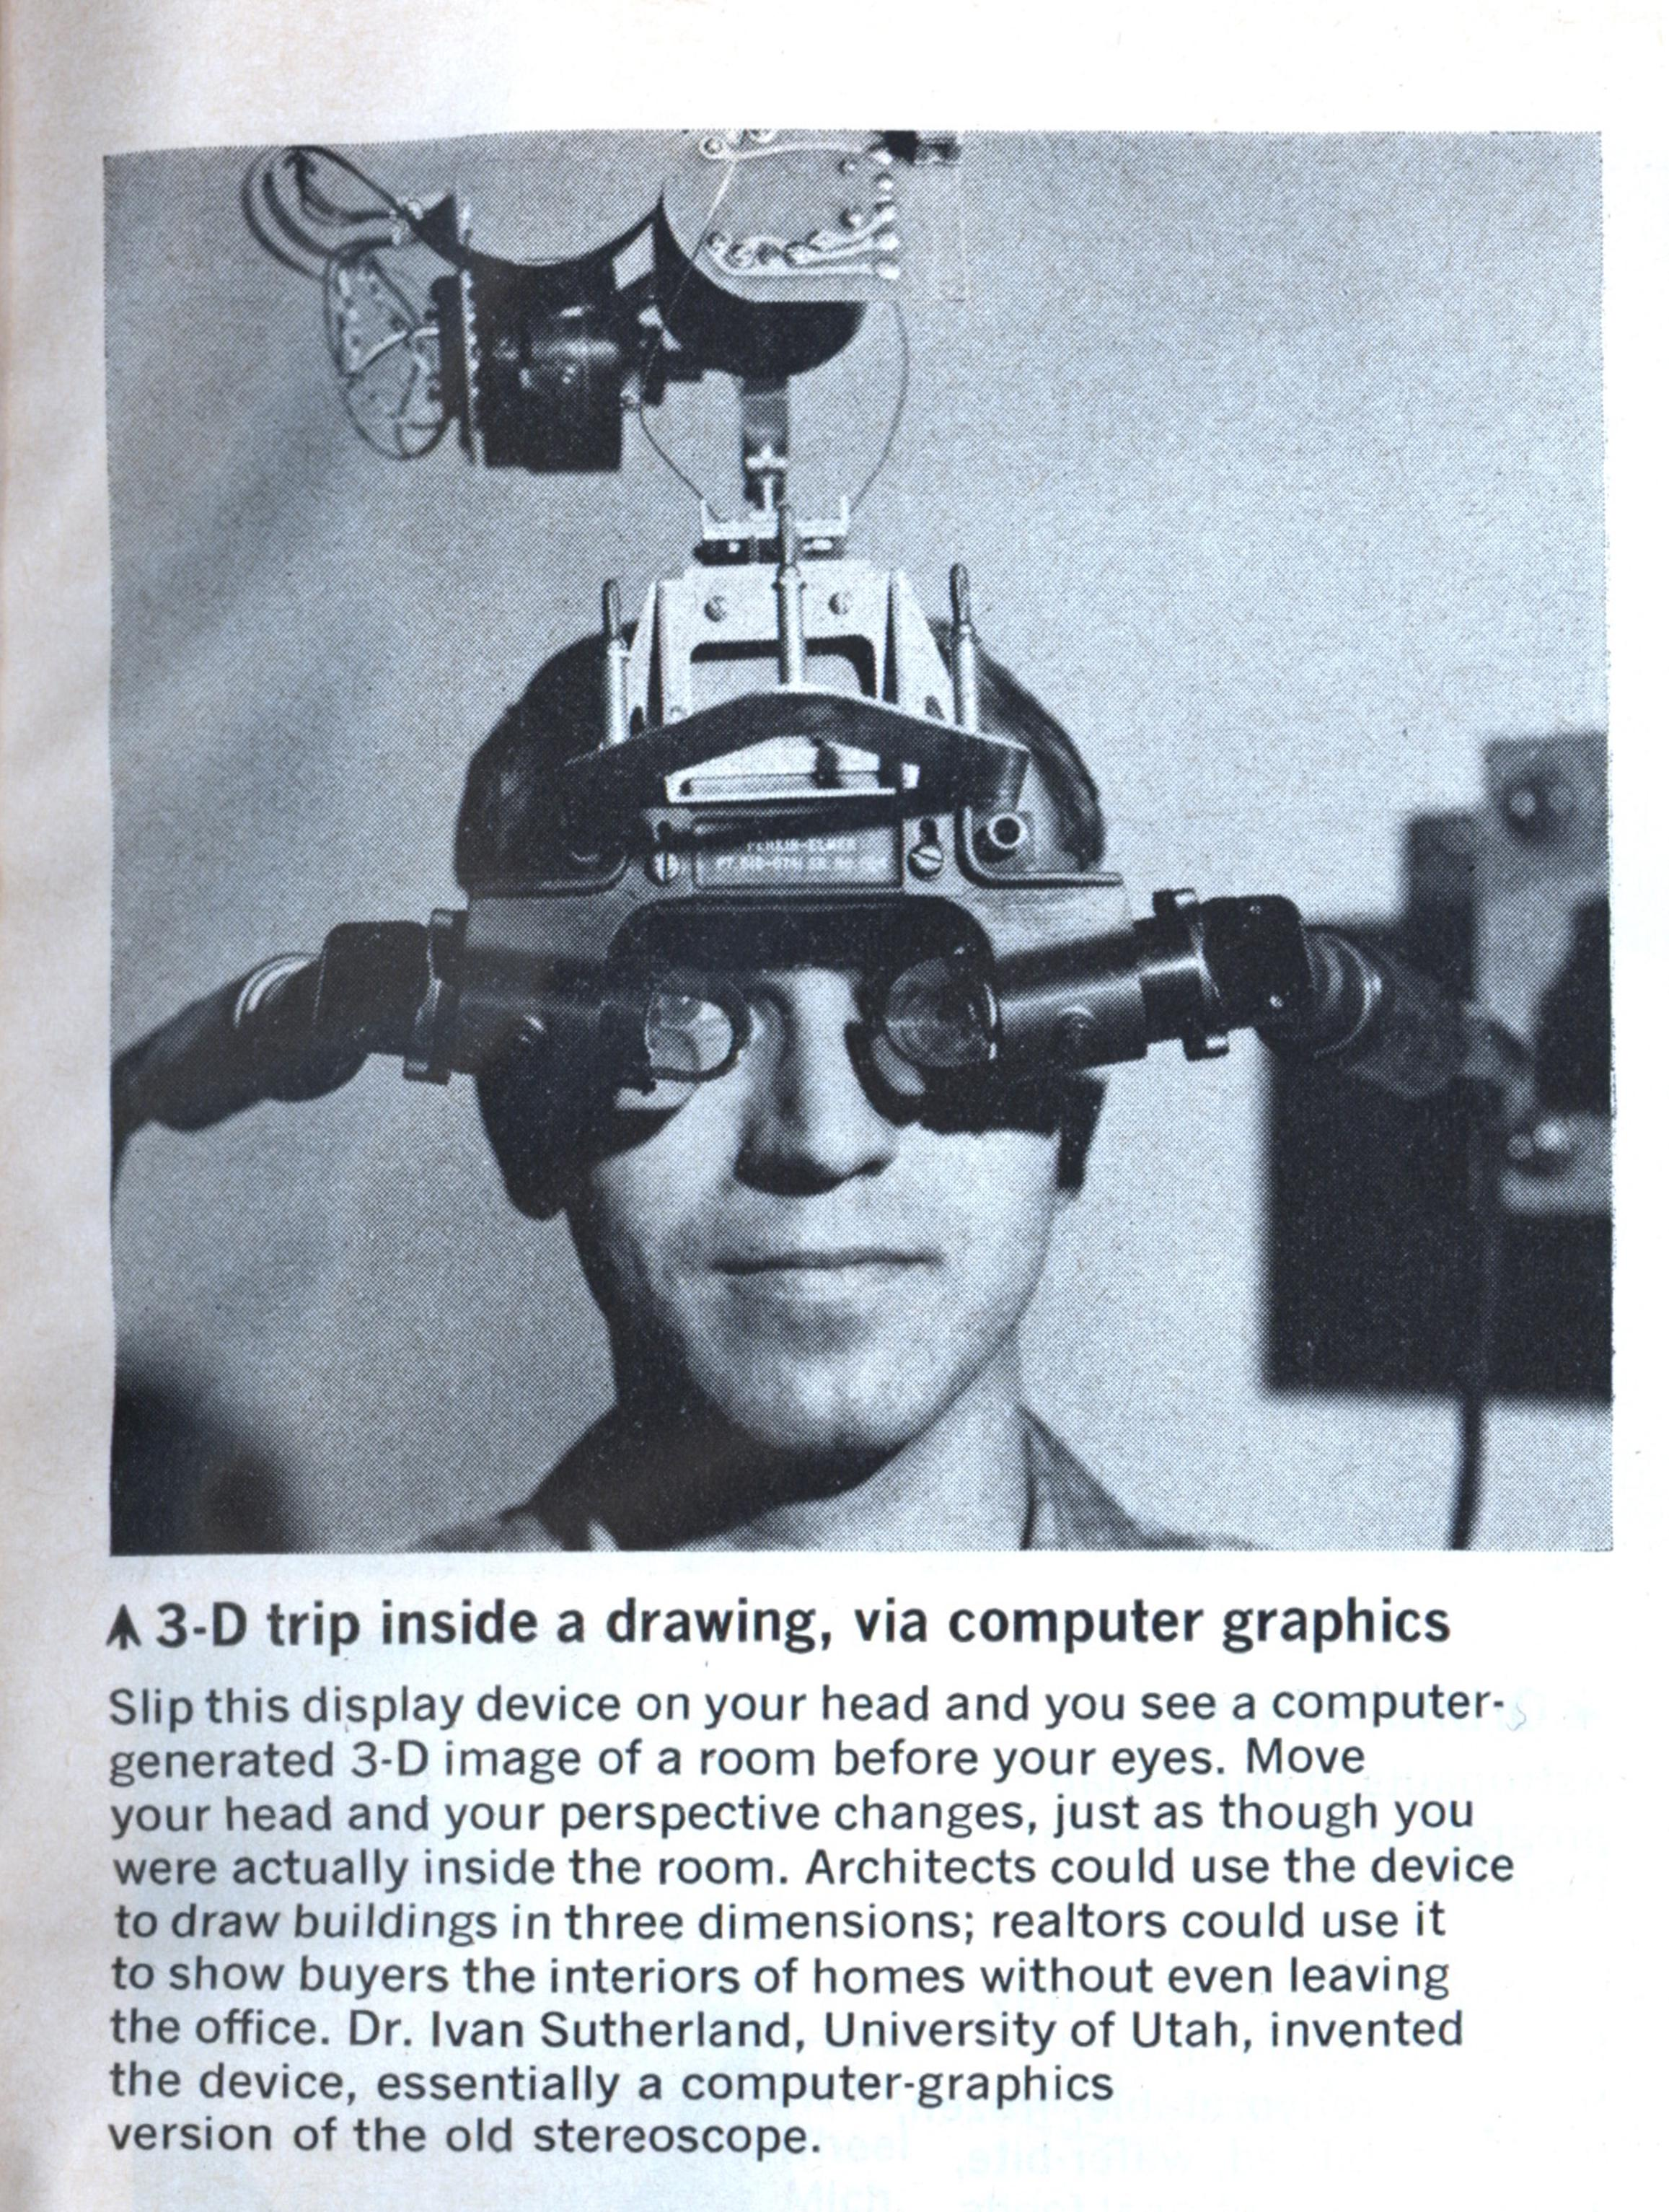 Vr goggles 3 d trip inside a drawing via computer graphics vr goggles 3 d trip inside a drawing via computer graphics apr 1971 freerunsca Choice Image